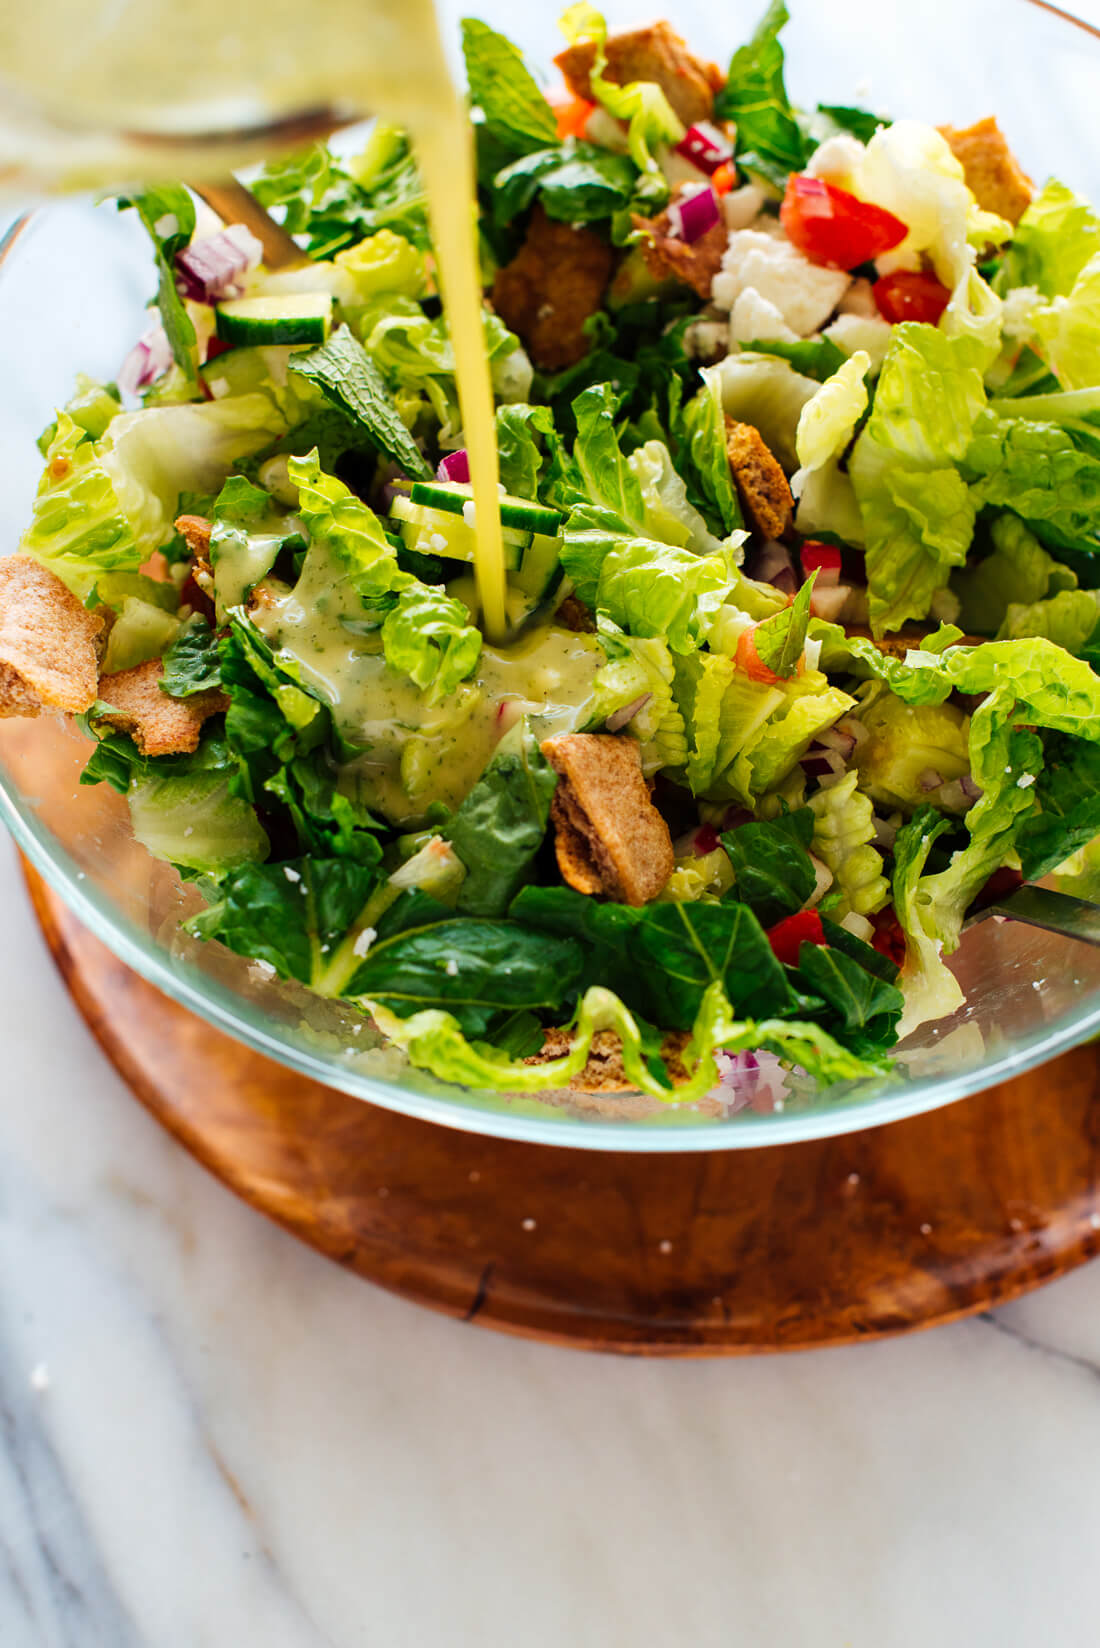 mint dressing over fattoush salad